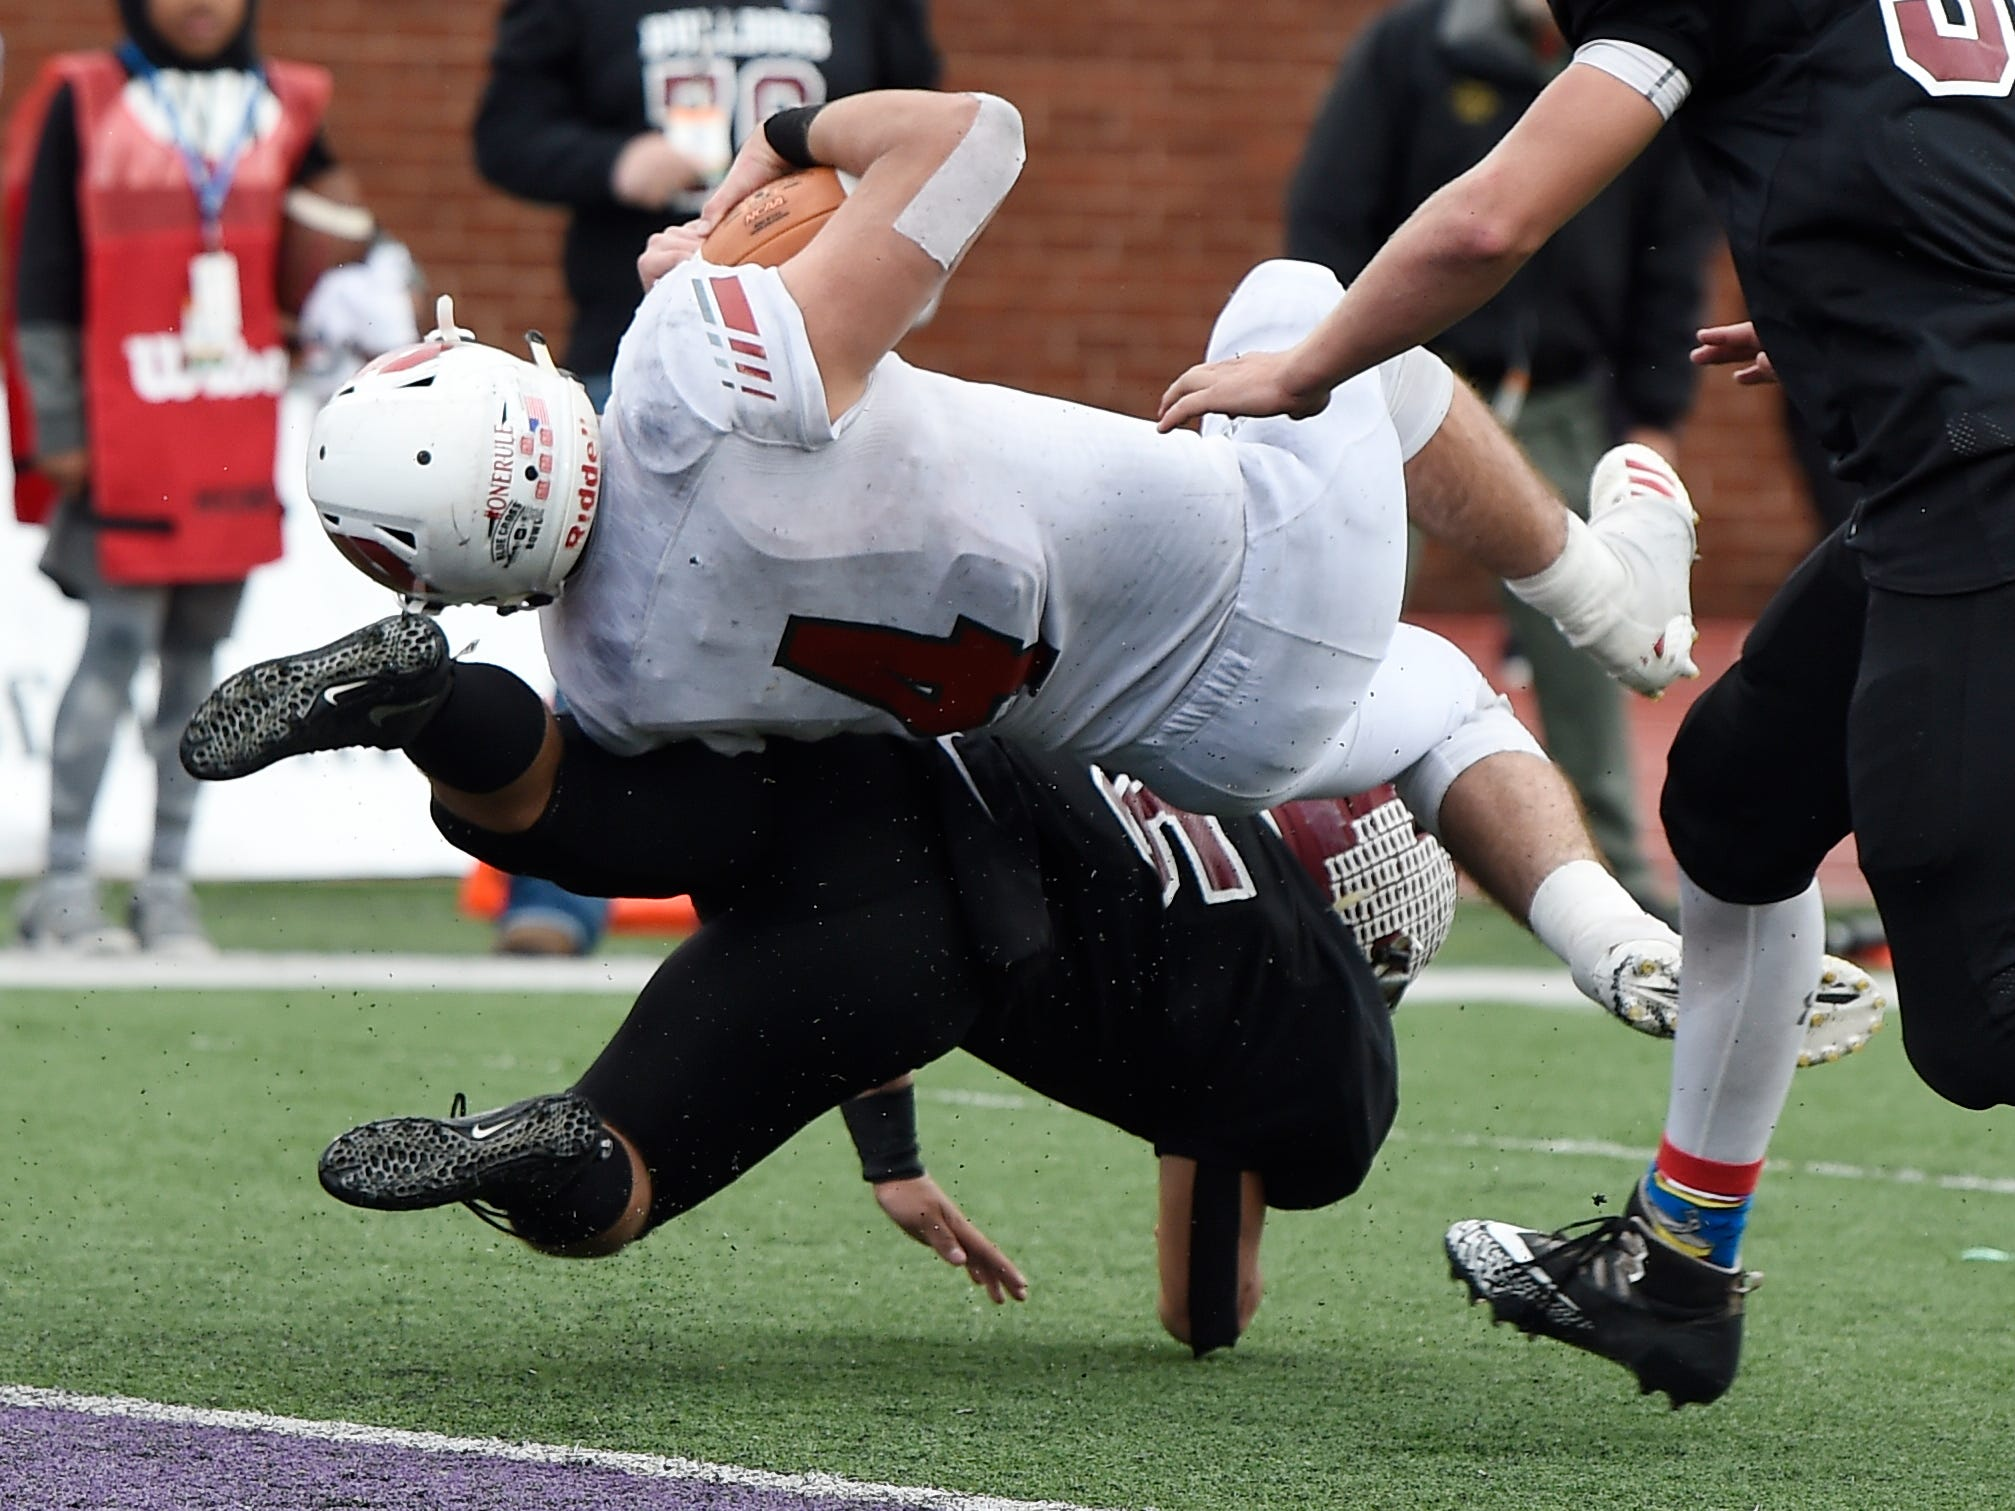 Cornersville's Cameron Whitaker (15) stops Whitwell linebacker Thunder Roberts (4) on a fourth-down catch short of the goal line in the third quarter at the Class I-A BlueCross Bowl state championship at Tennessee Tech's Tucker Stadium in Cookeville, Tenn., on Saturday, Dec. 1, 2018.